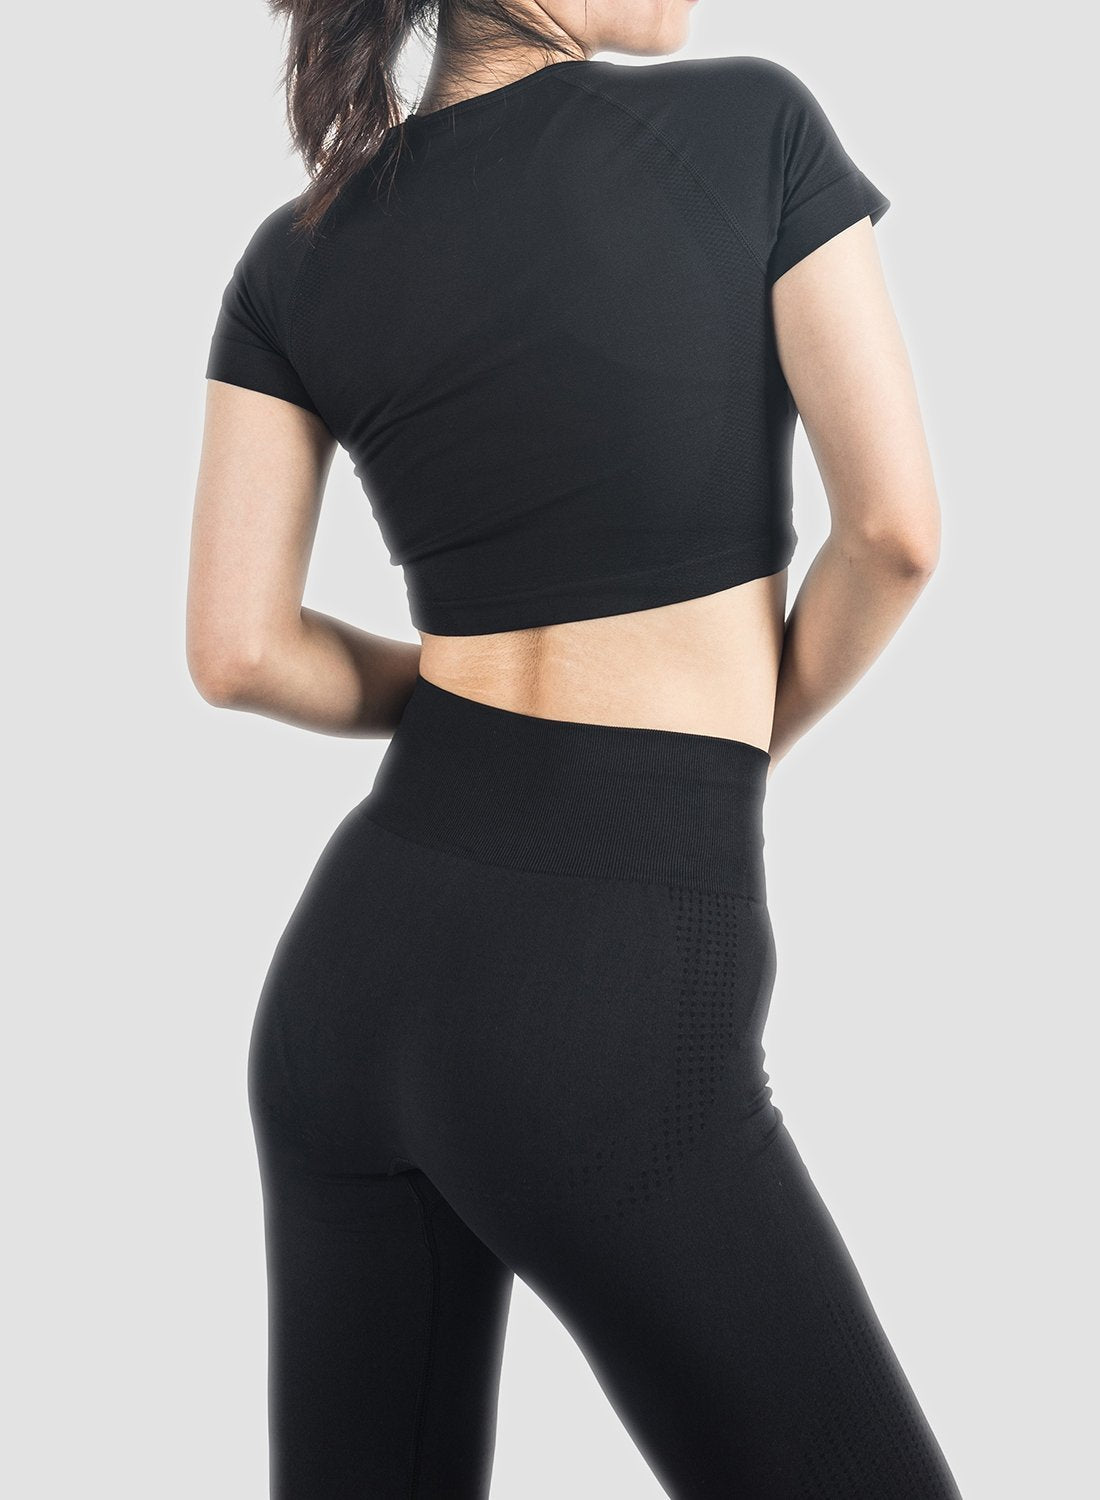 Solid Color Seamleass Body Form Tops